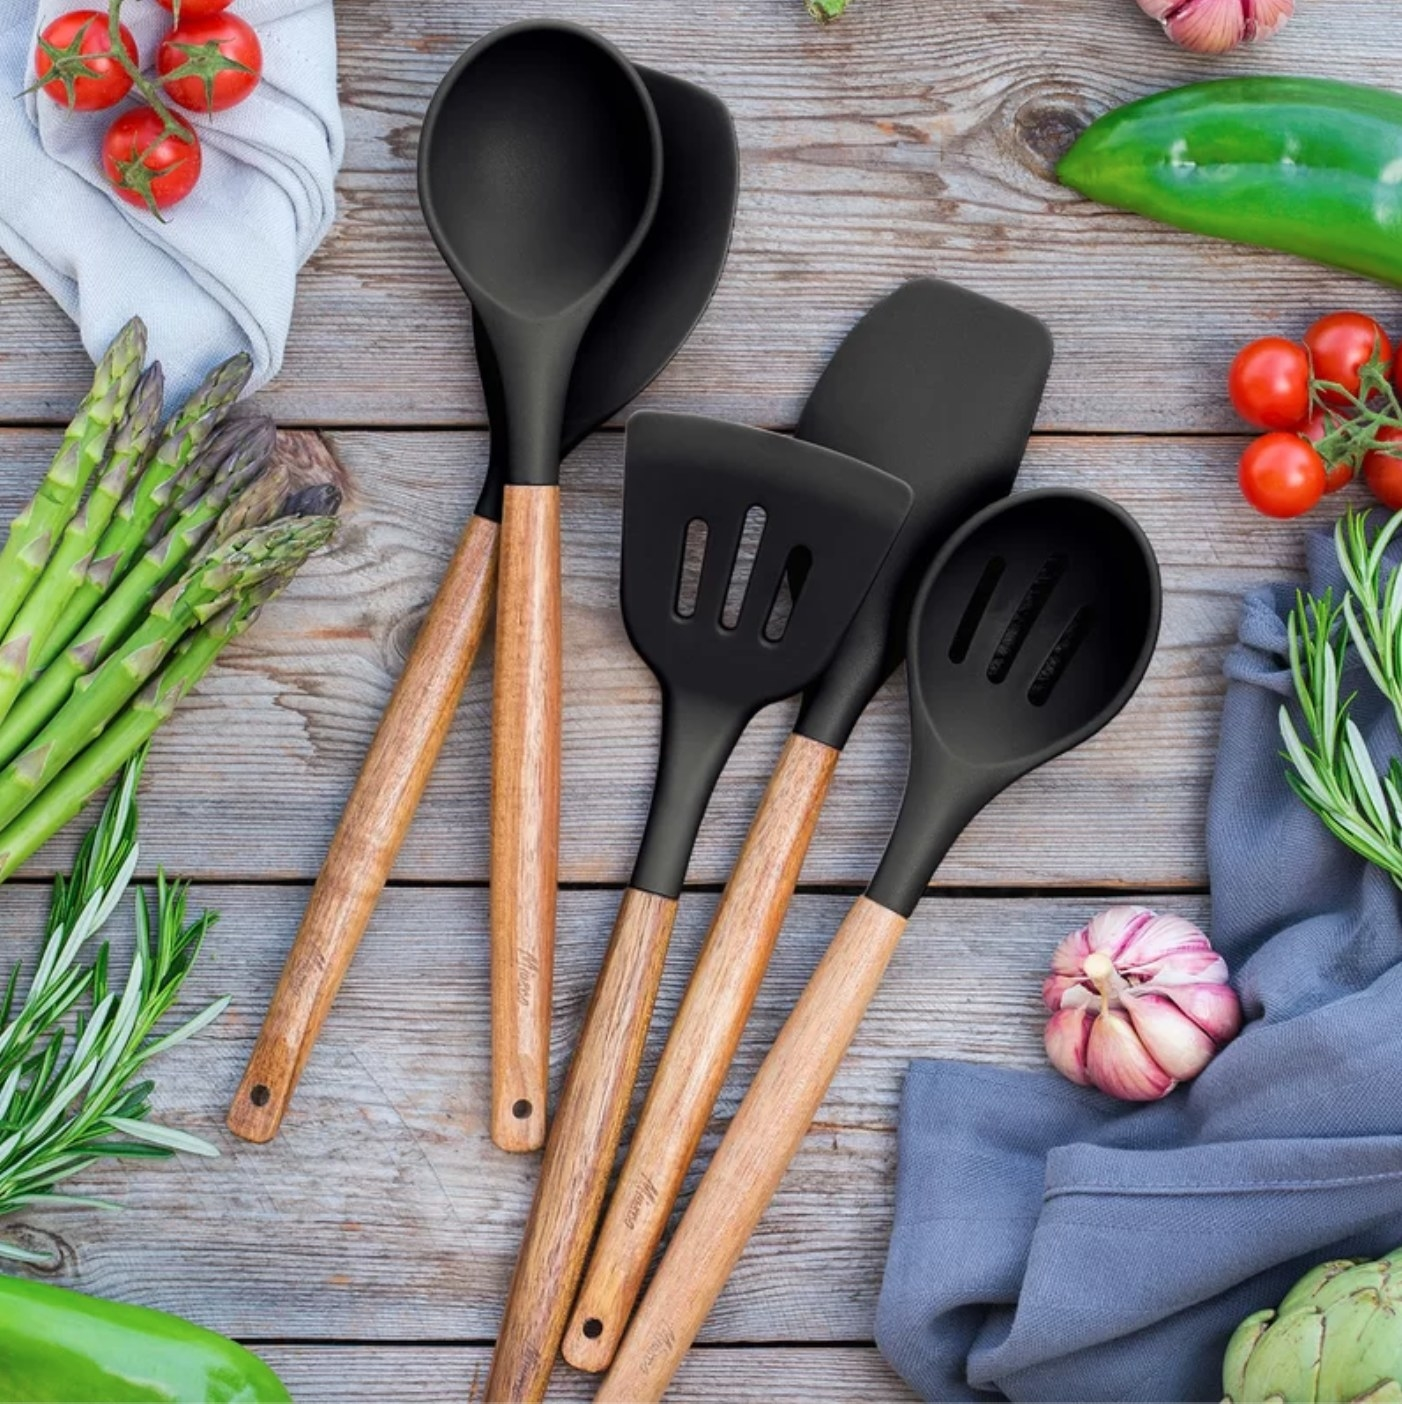 The five-piece set of silicone spoons in black